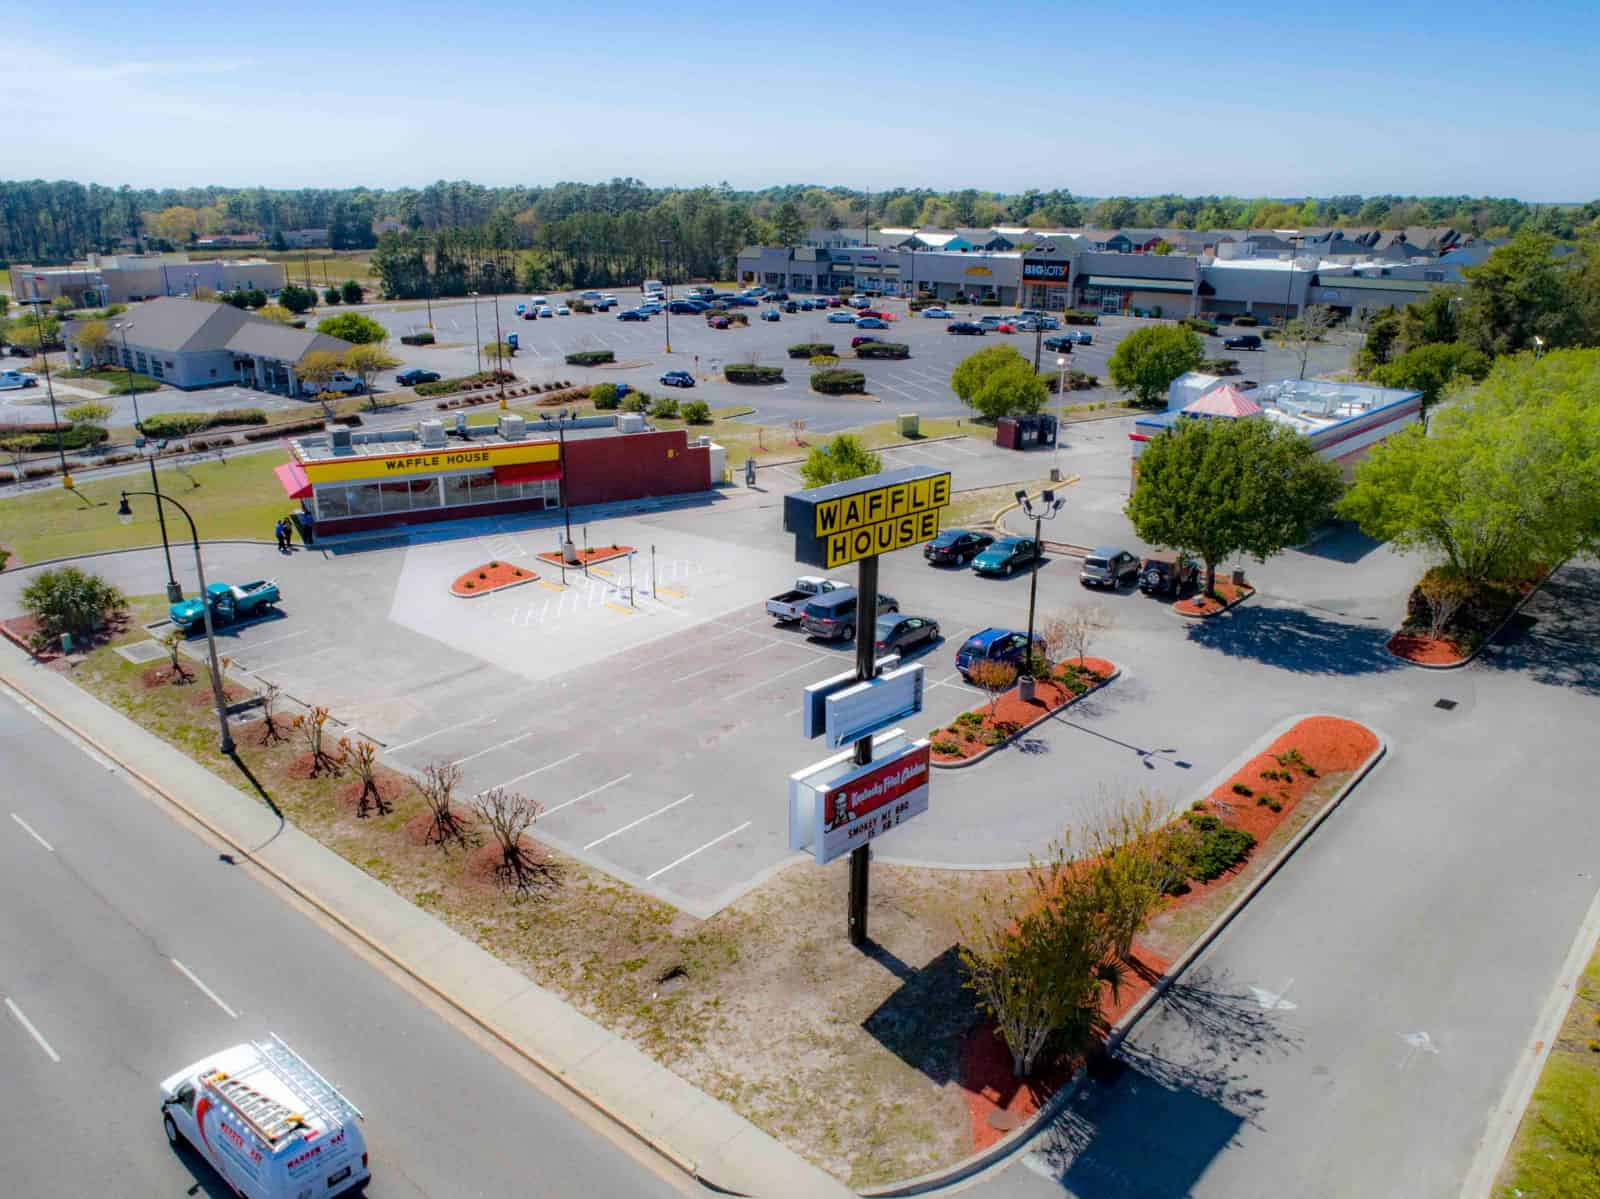 commercial real estate shopping plaza drone photo in South Carolina